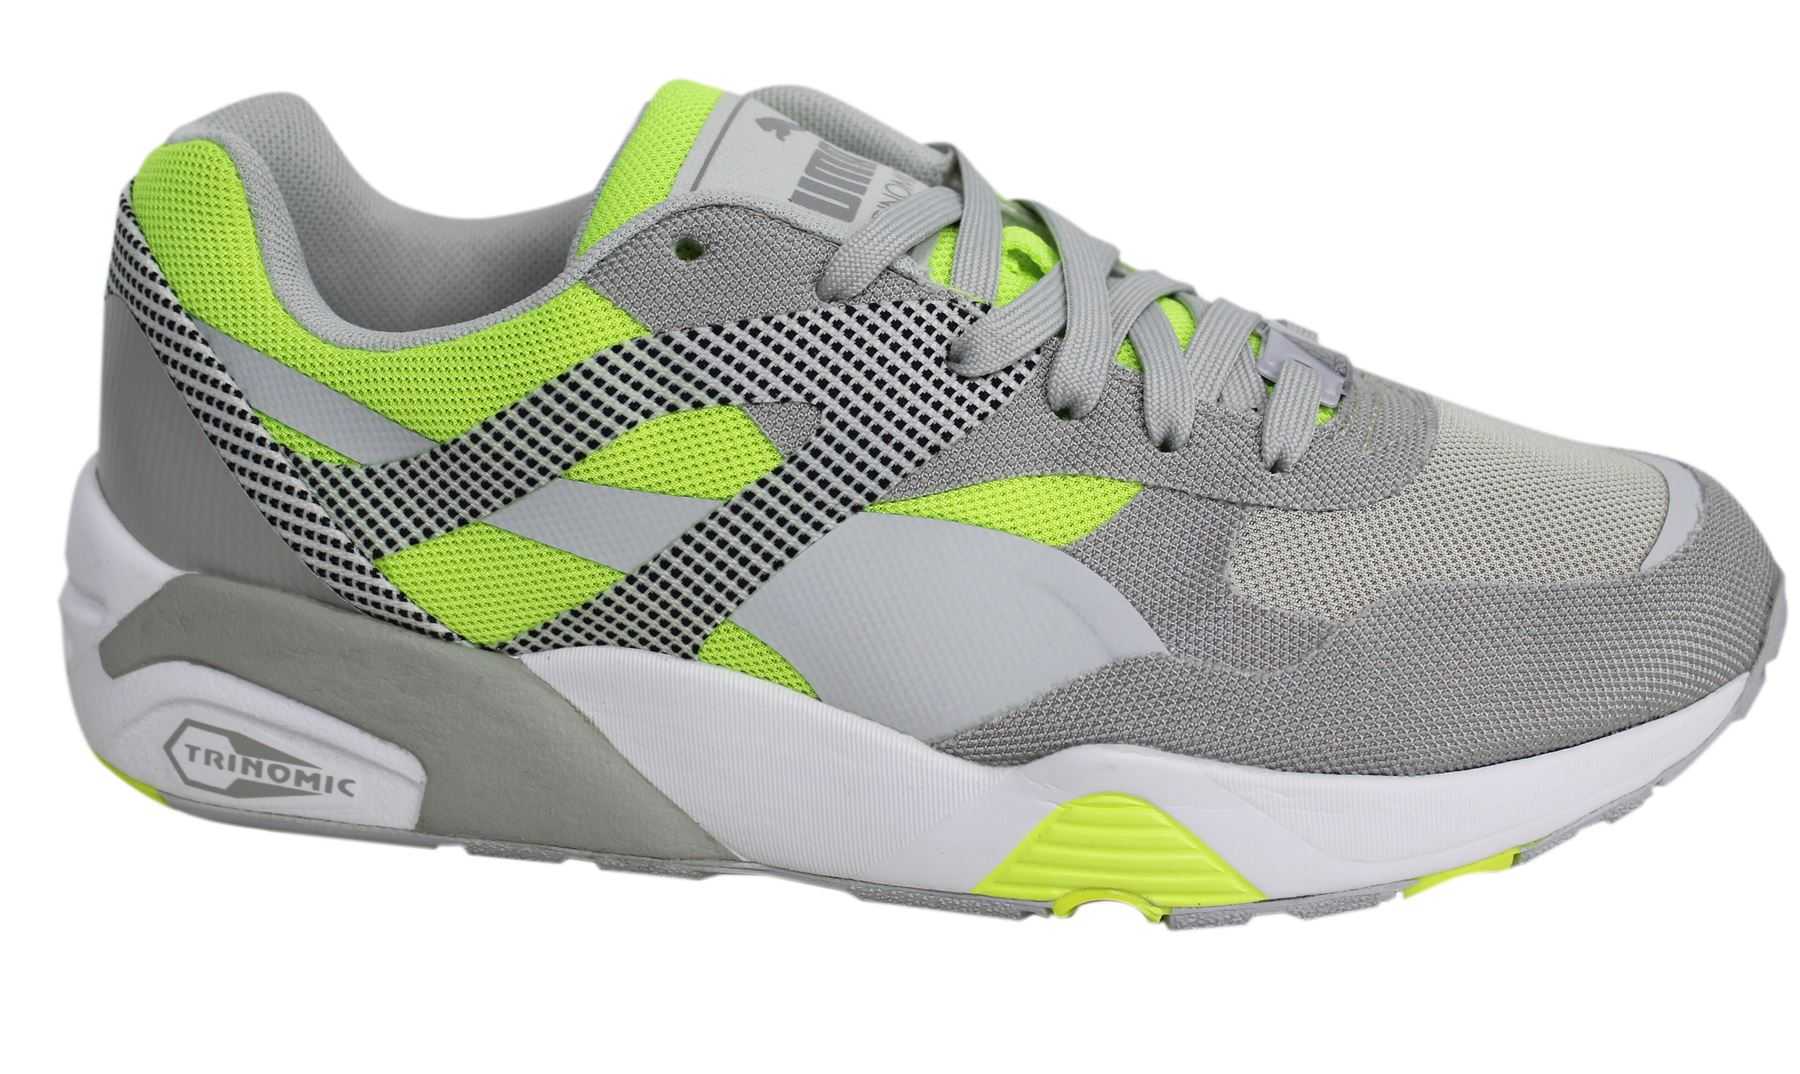 68dade81242 Puma R698 Progressive Lace Up Grey Mens Fitness Gym Trainers 362046 ...